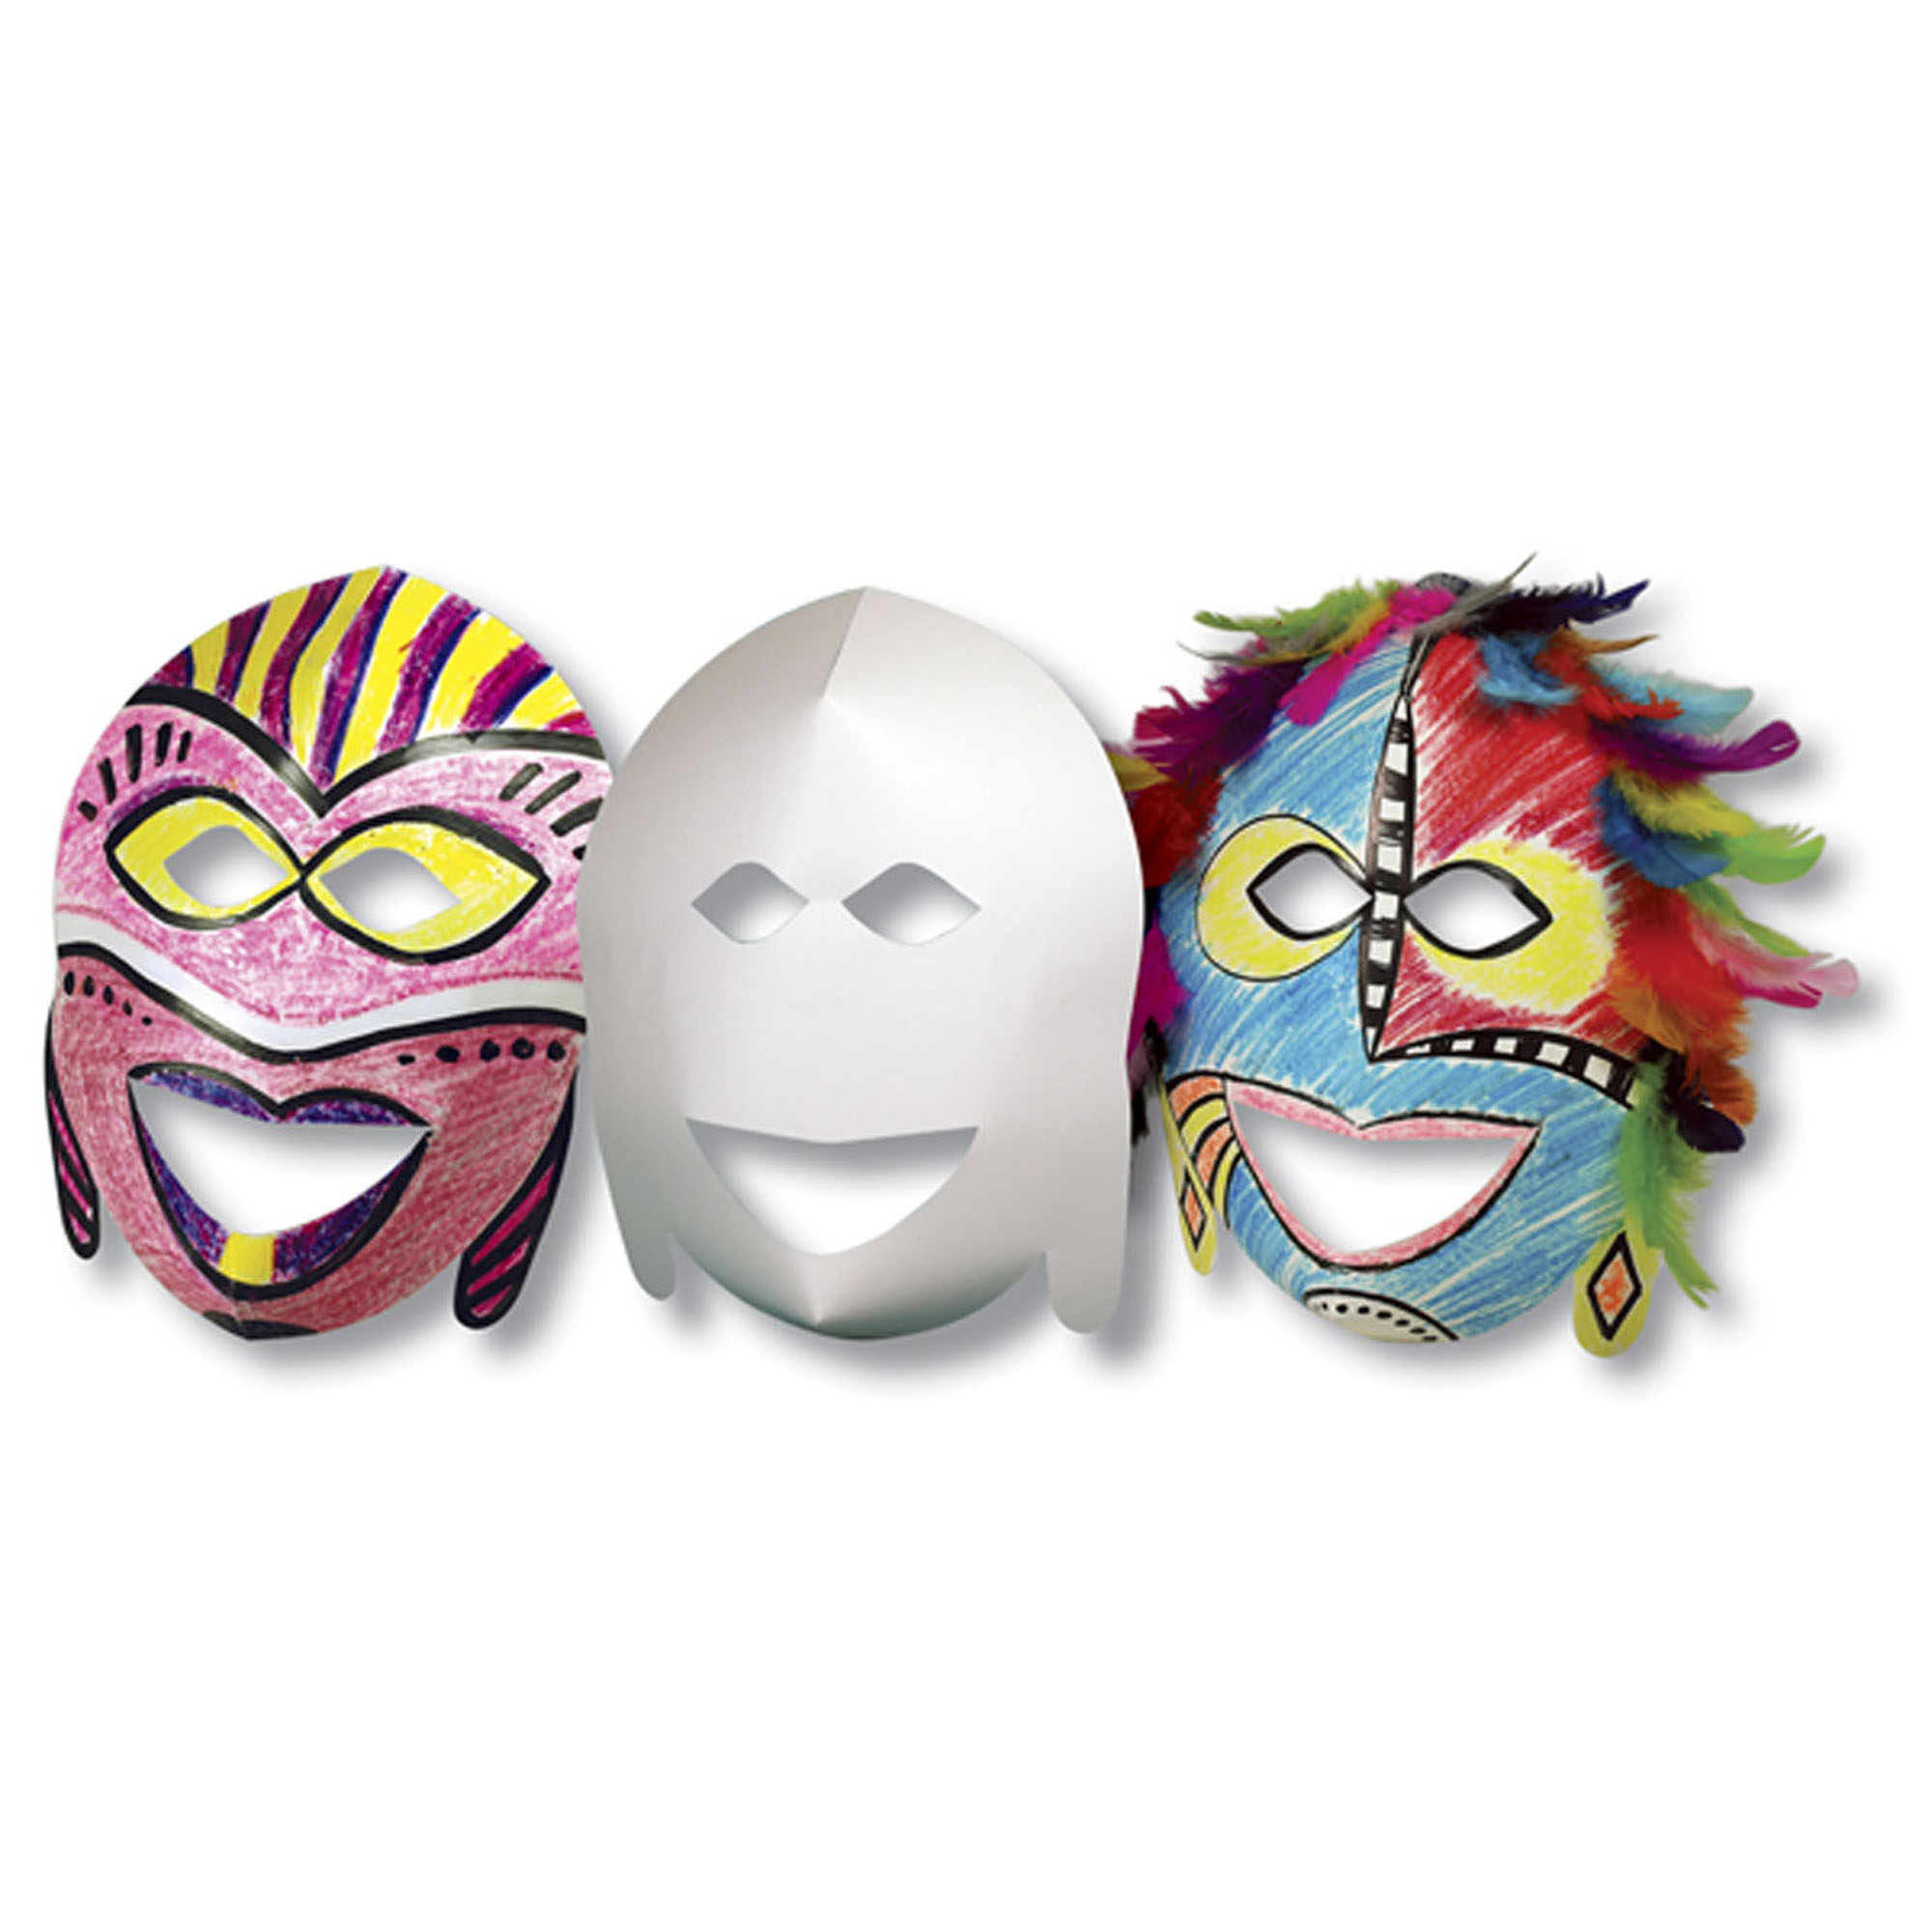 Roylco® African Masks, 20 per pack, Set of 3 packs